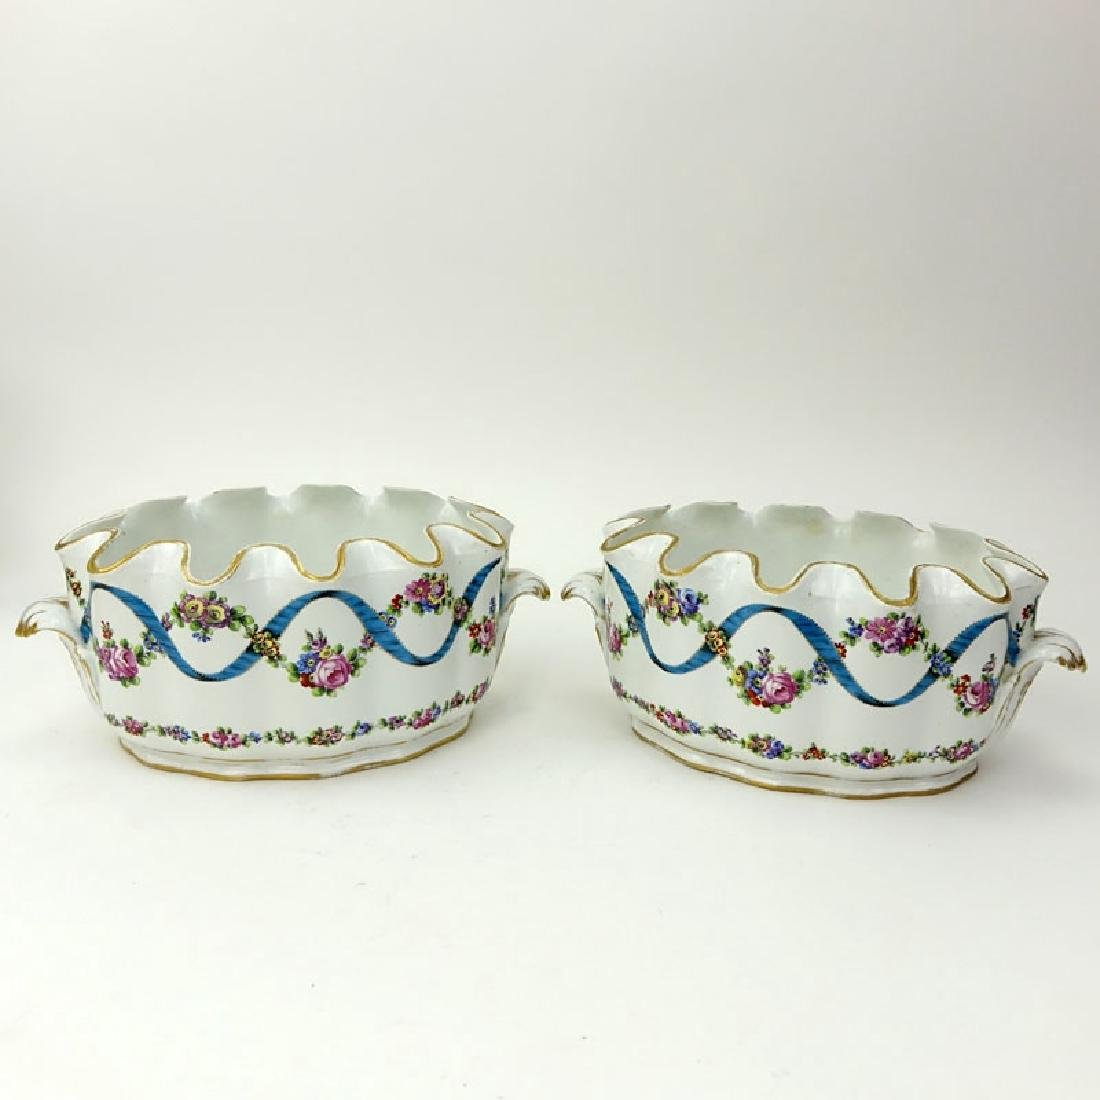 Pair of 18/19th Century French Porcelain Monteiths.